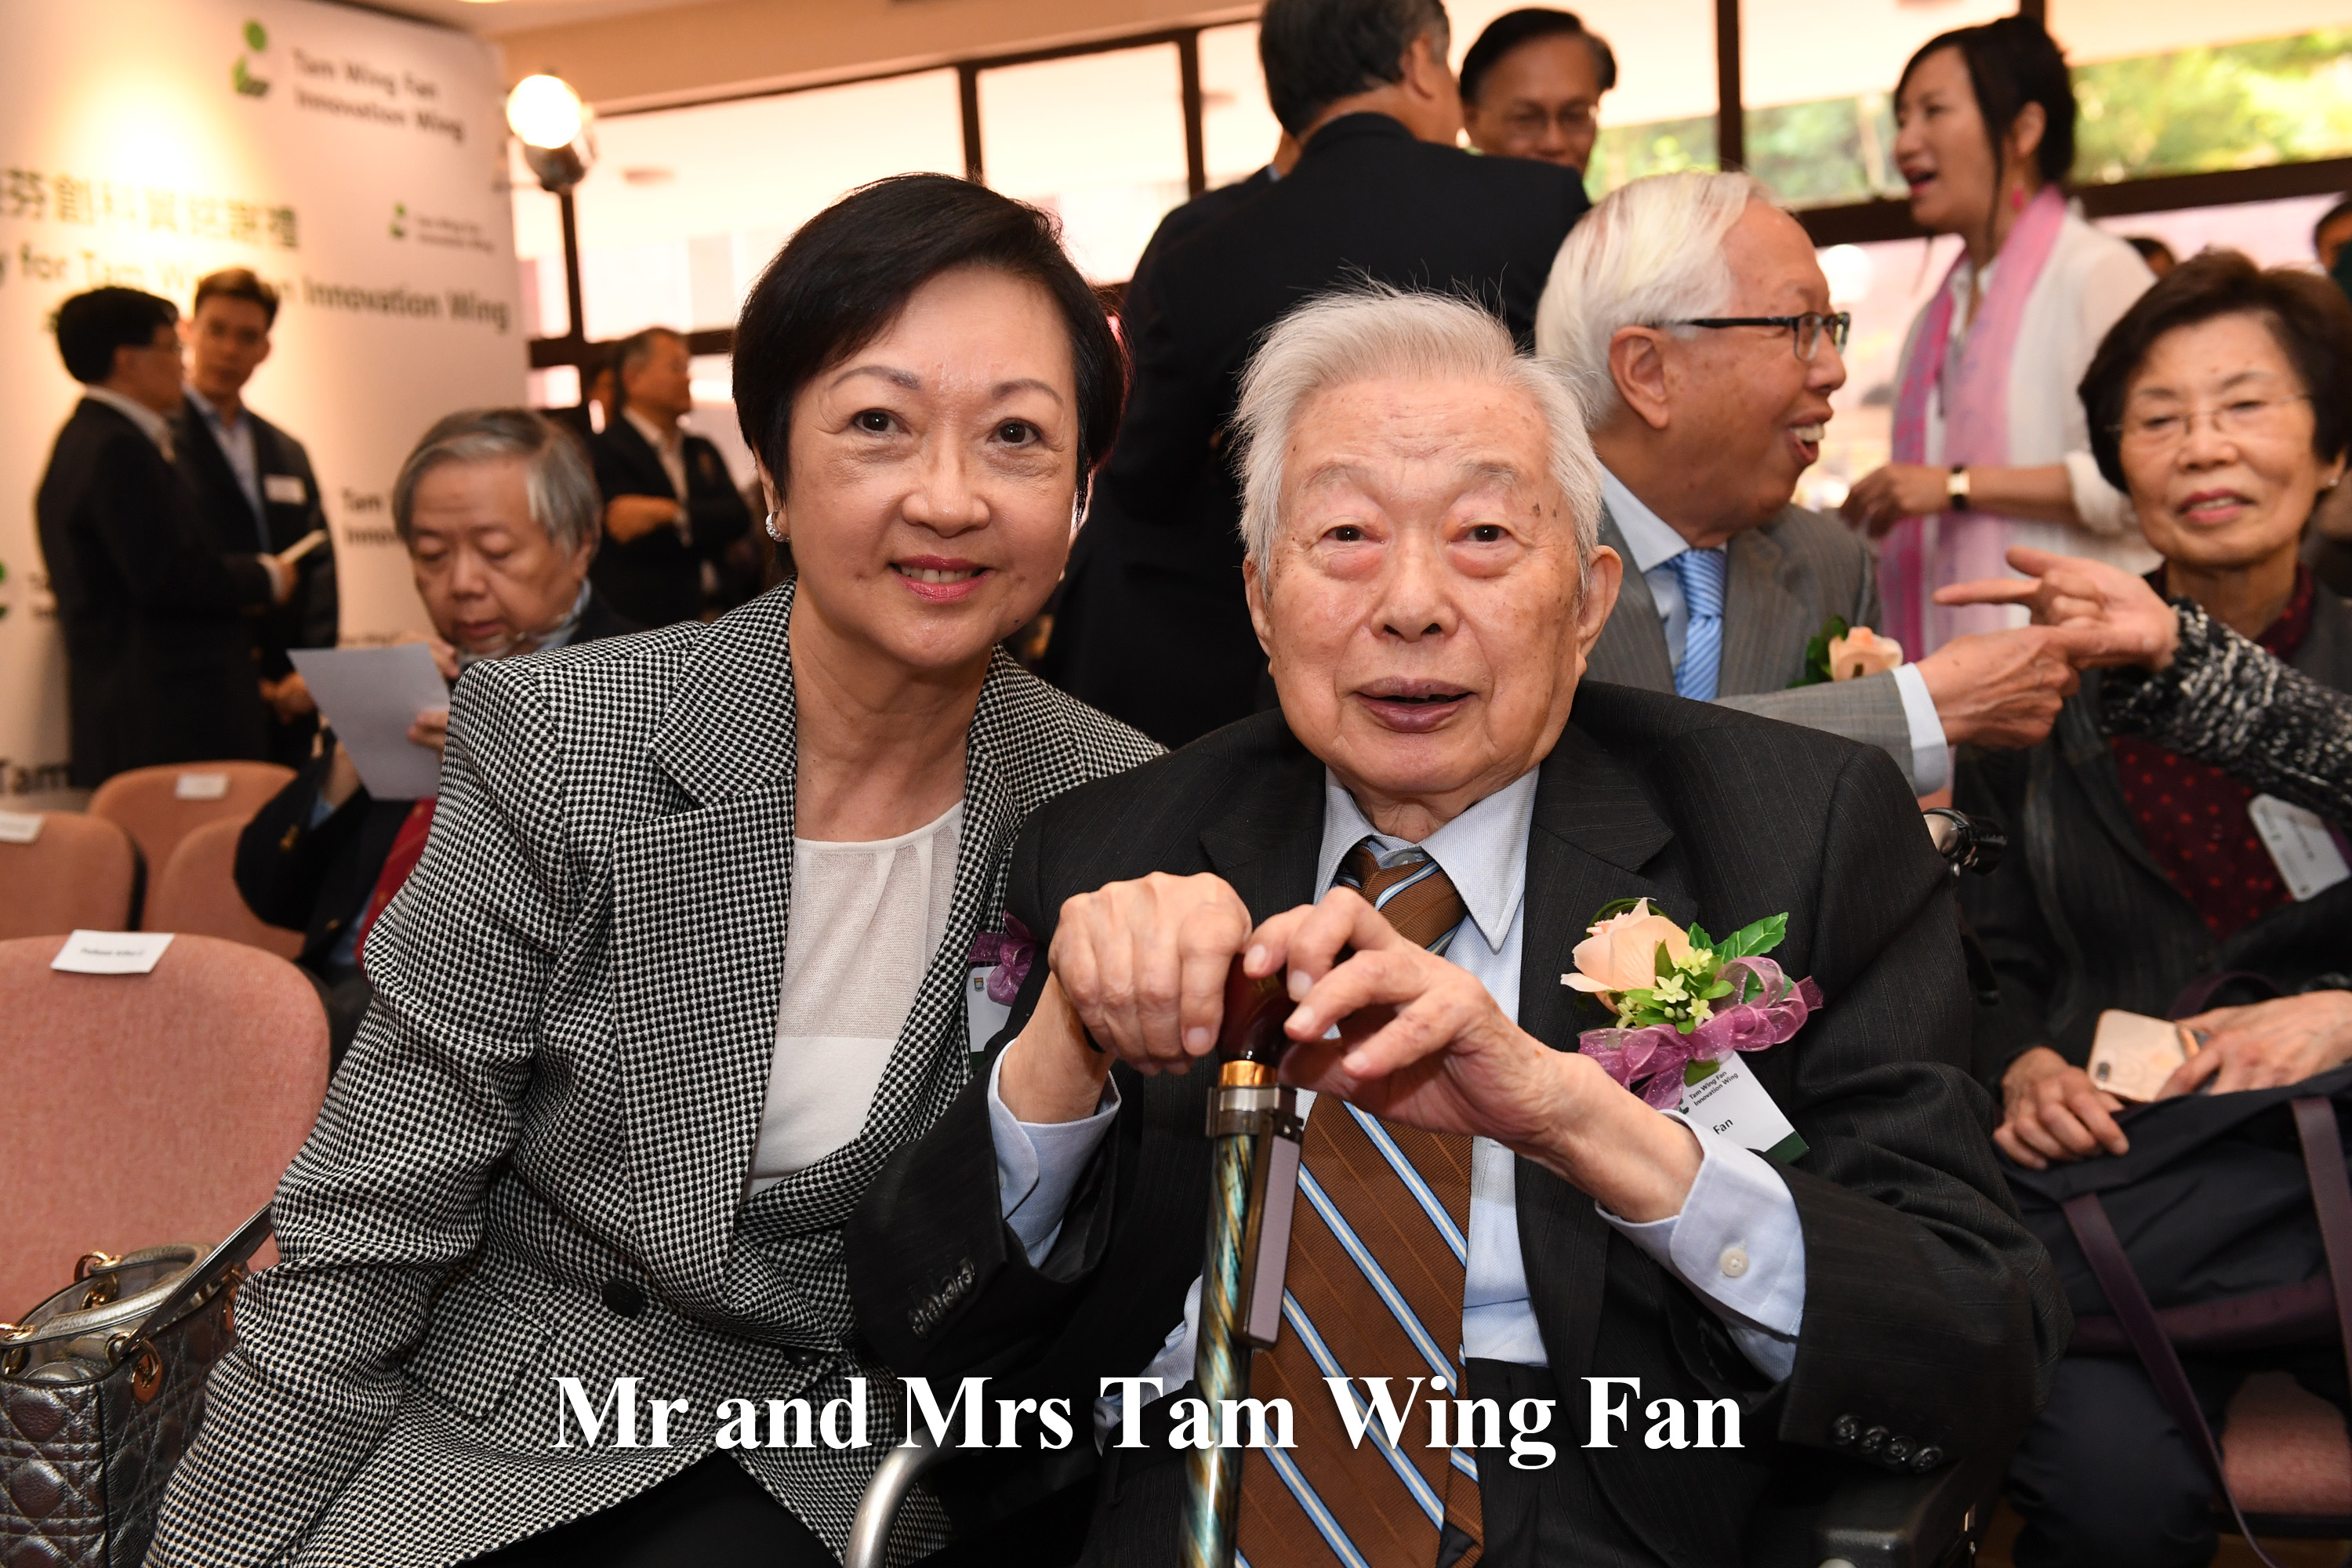 Mr and Mrs Tam Wing Fan